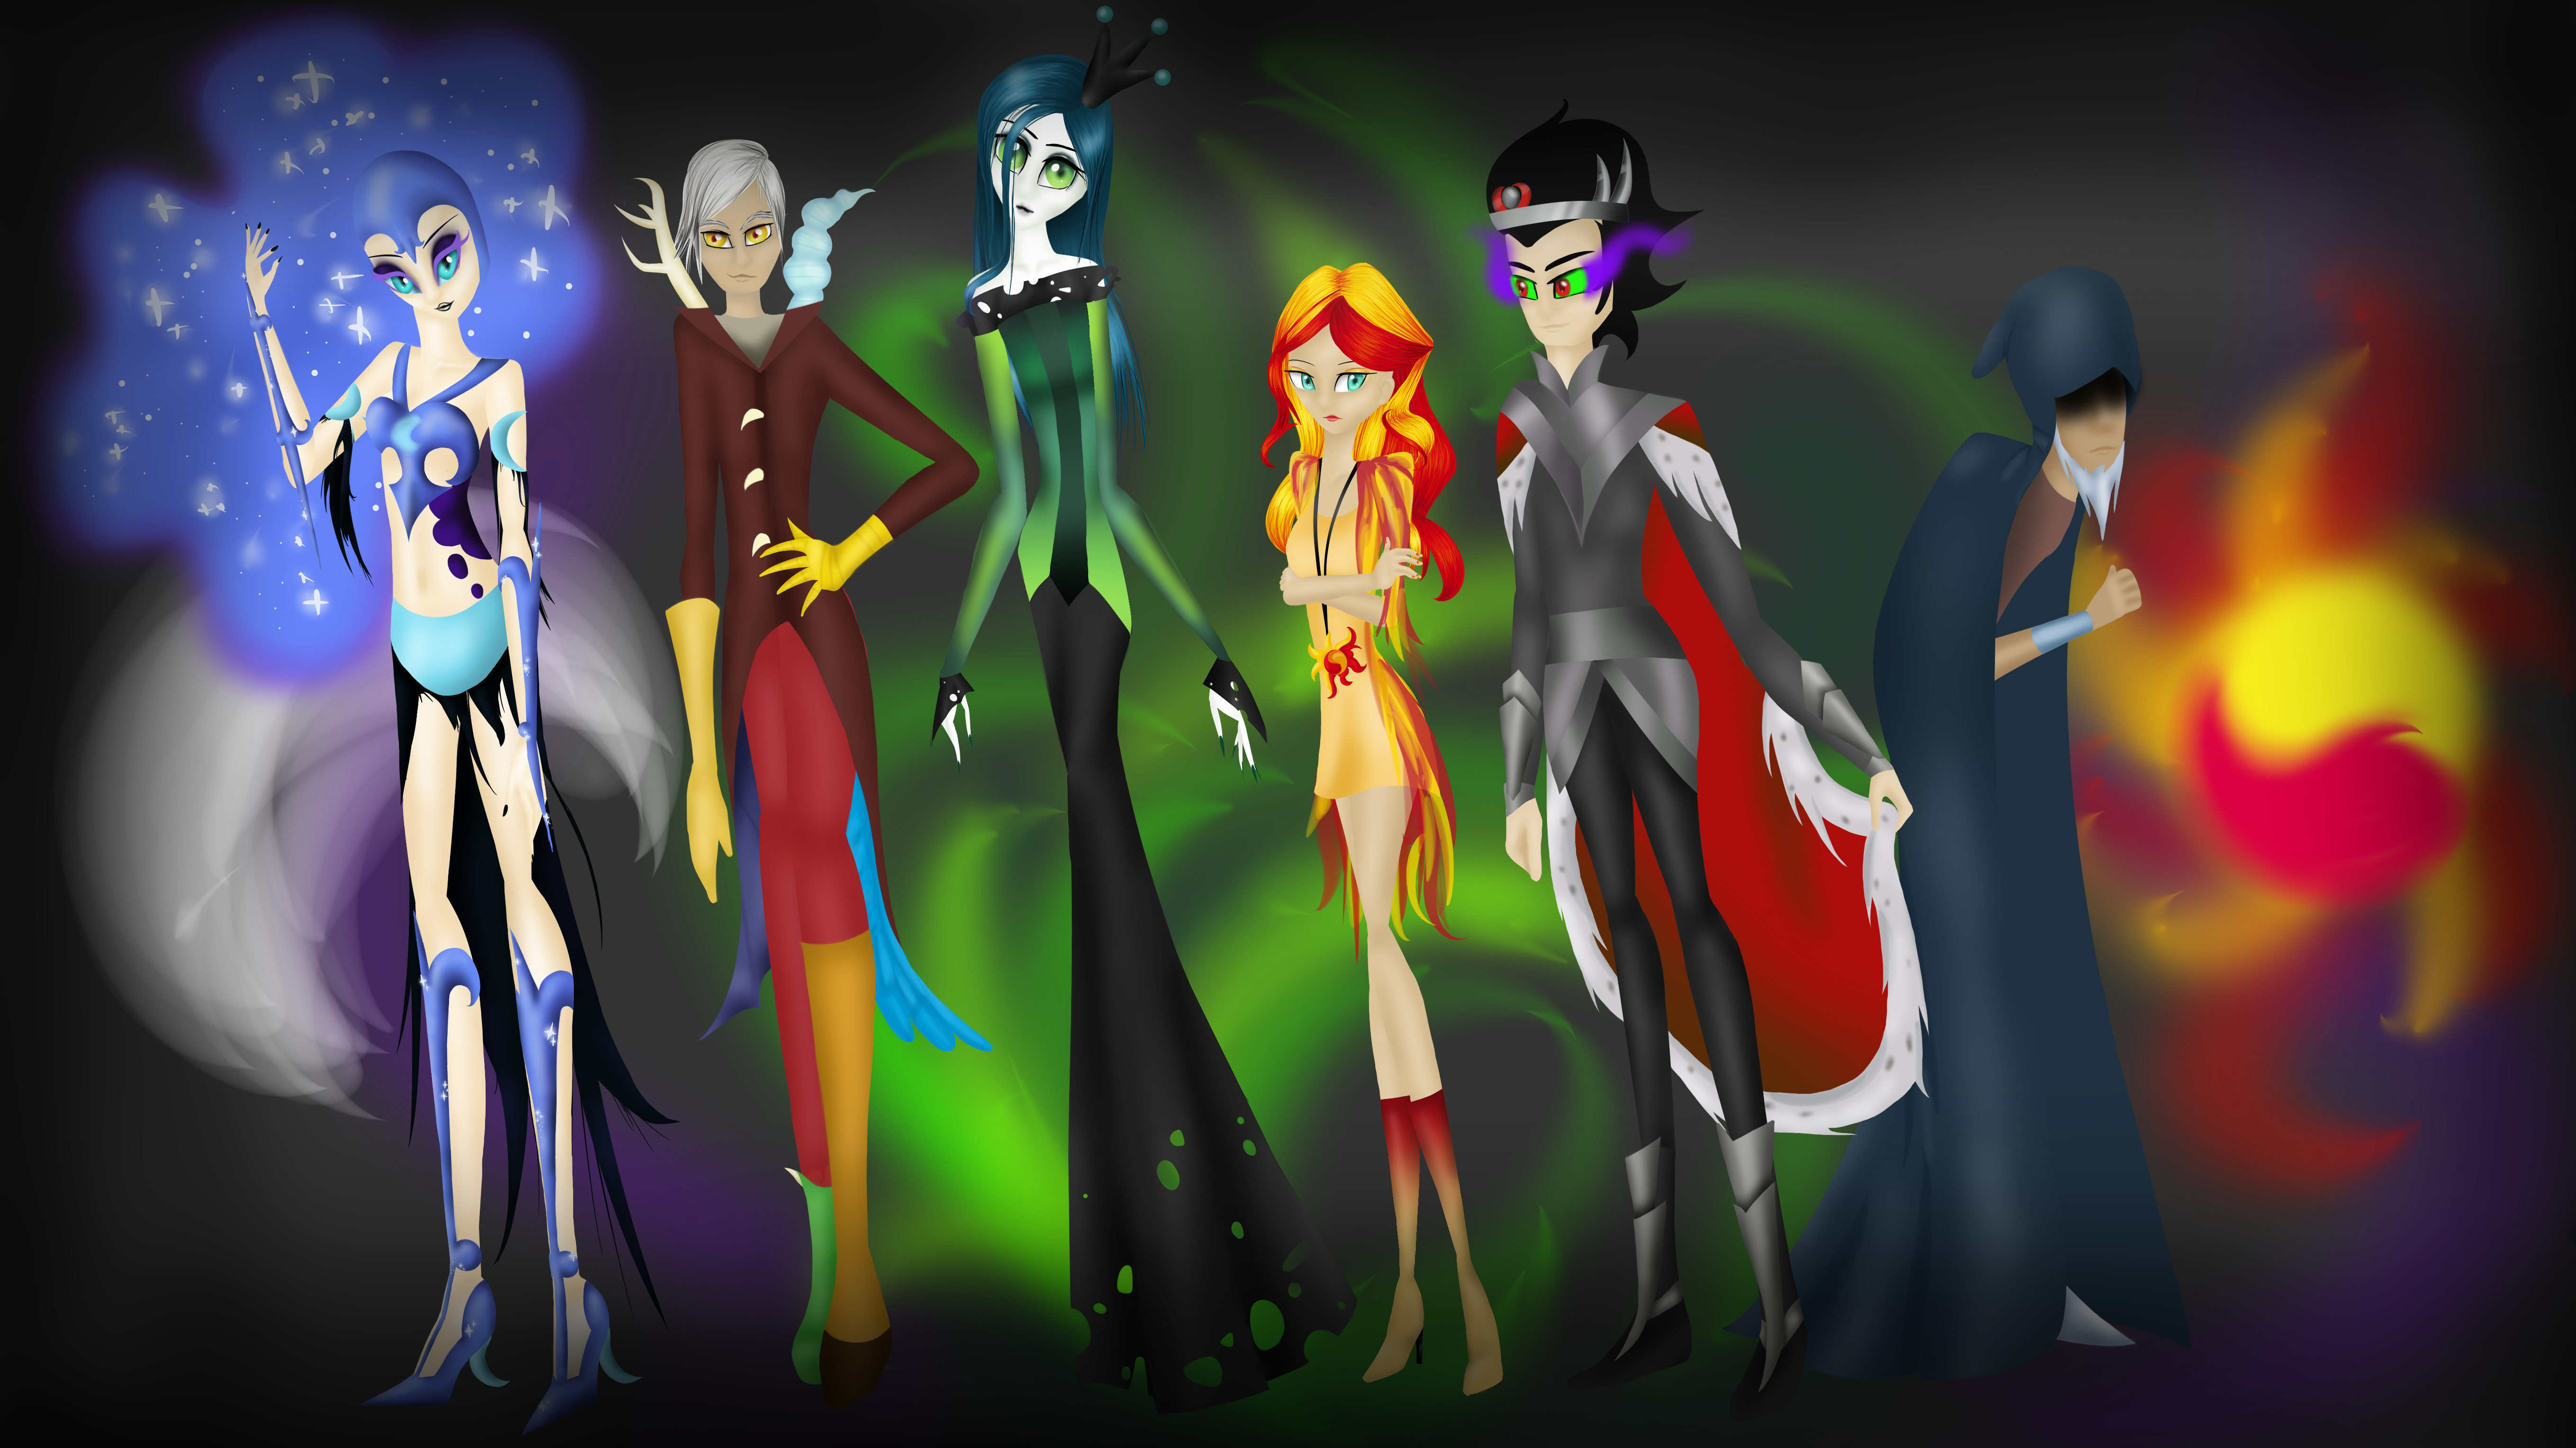 What Are The Six Main Elements Of Art : Elements of disharmony major villain six by yuntaoxd